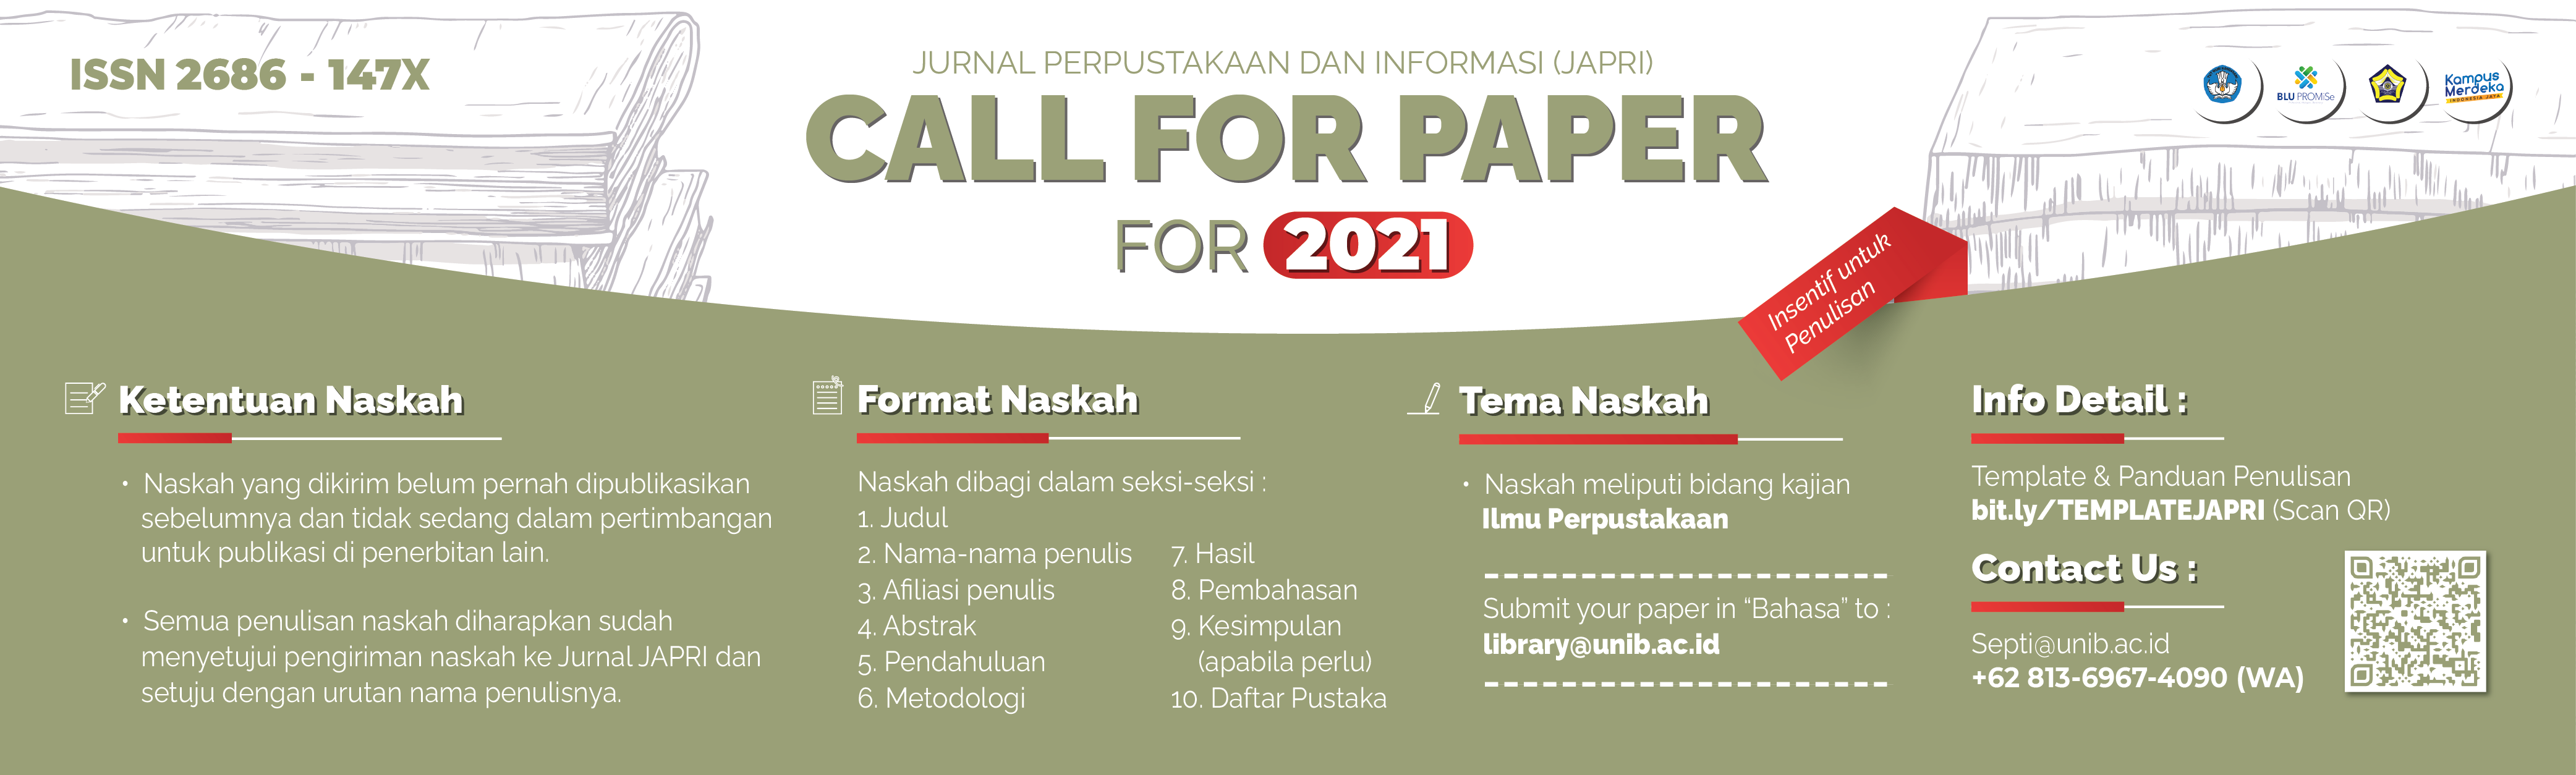 CALL FOR PAPER 2021